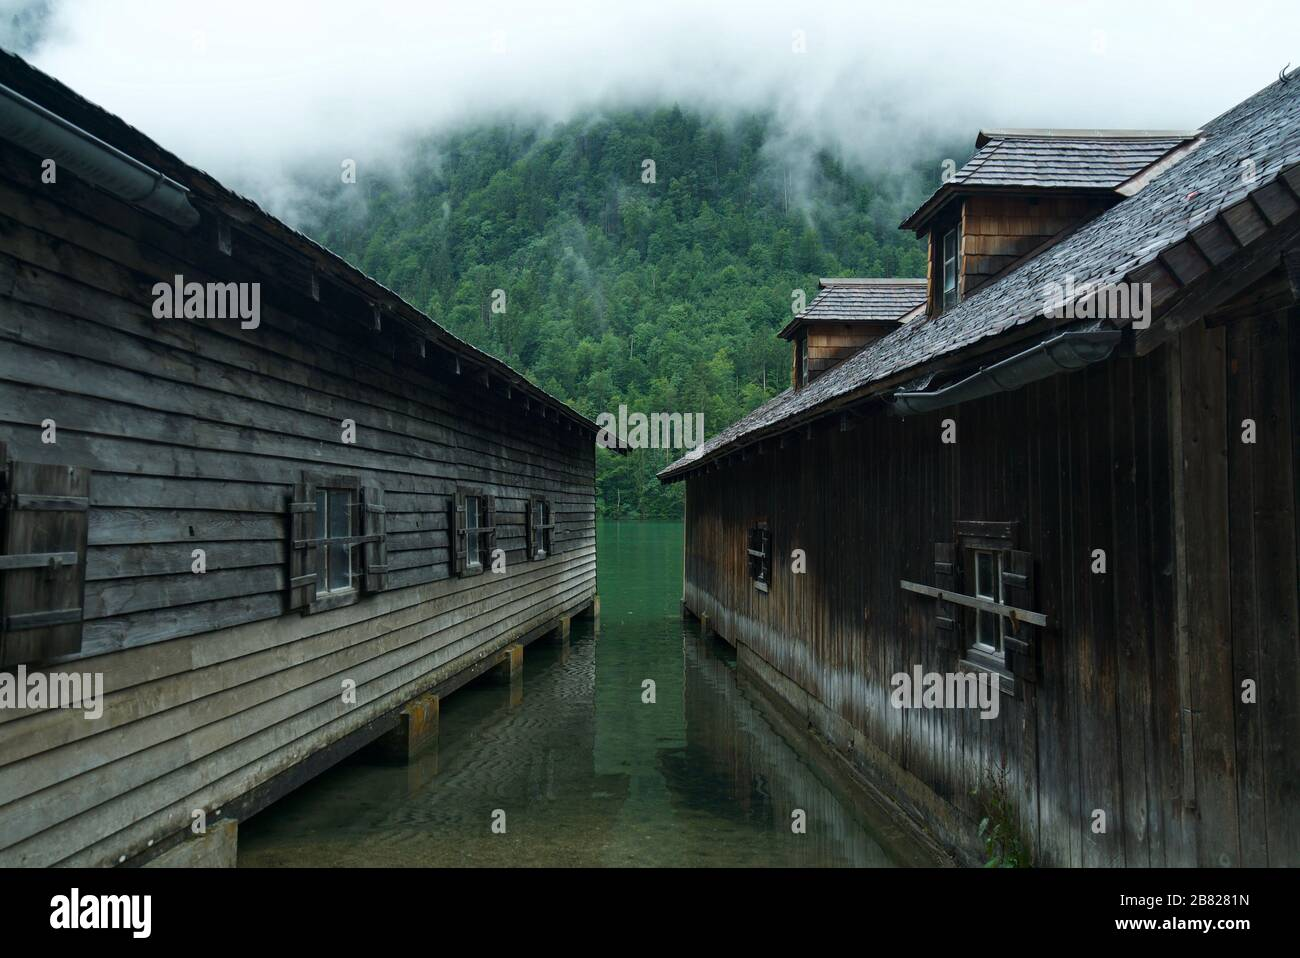 Boathouse / Boathouses by the water surrounded by mountains and clouds at Lake Königssee (Berchtesgaden National Park). Wooden cabins by the lake. Stock Photo